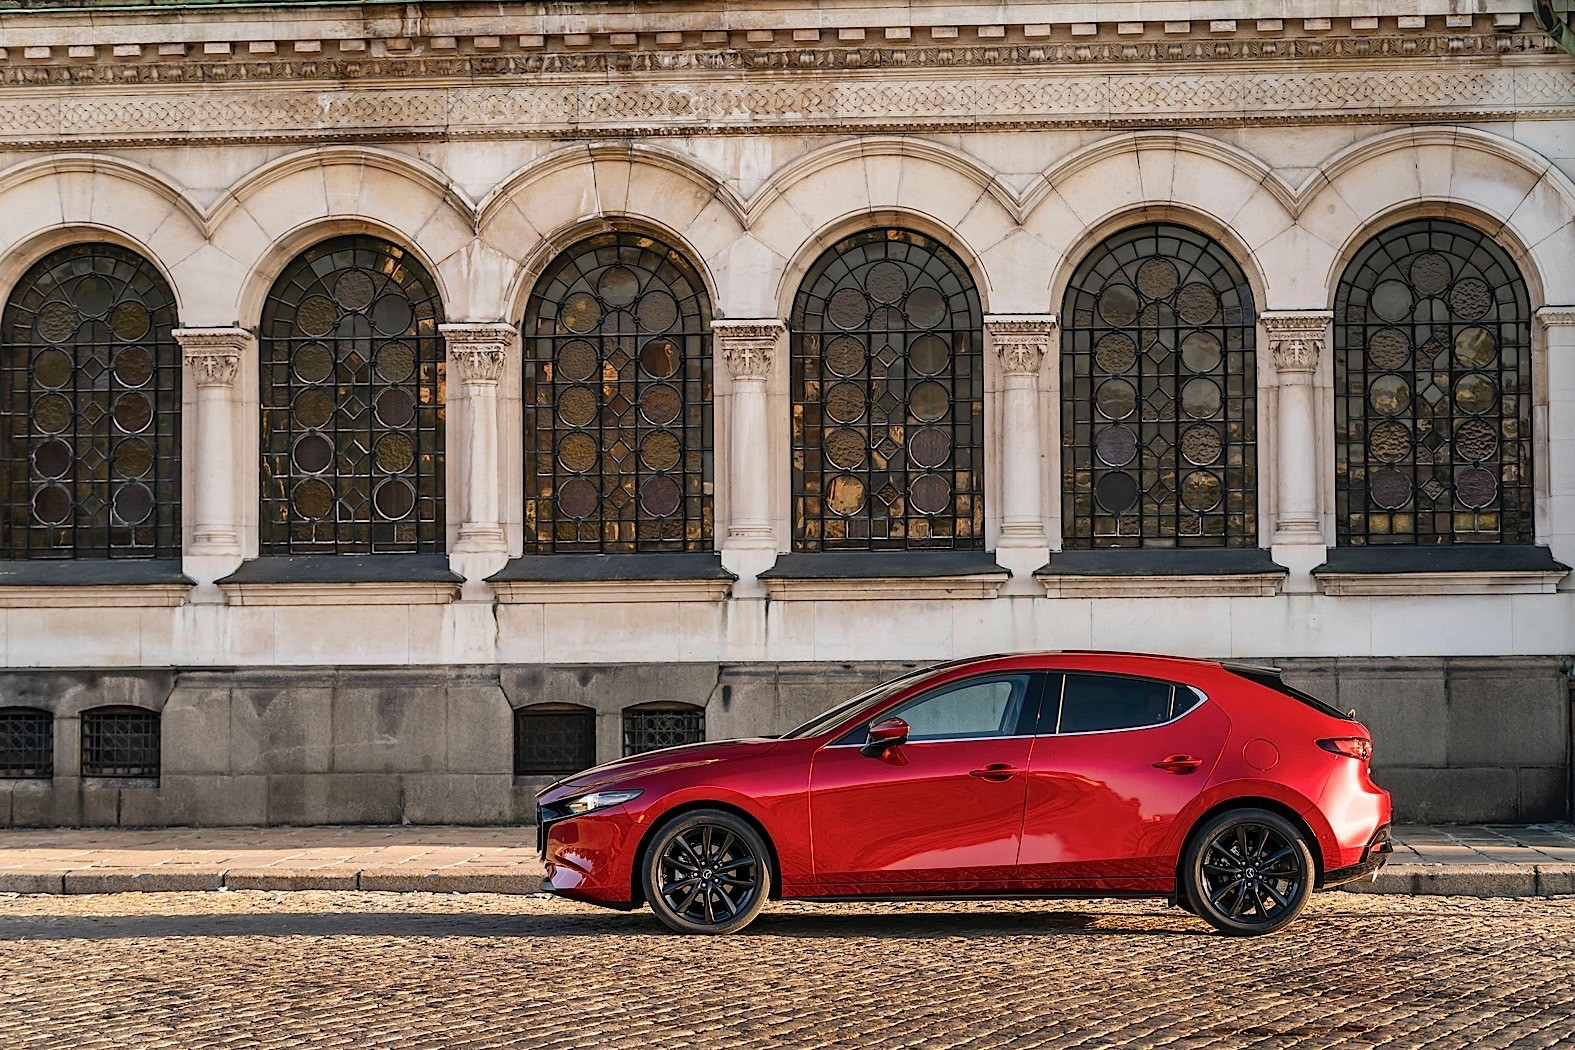 2021 Mazda3 Turbo Reportedly Coming With SkyActiv-G 2.5T ...